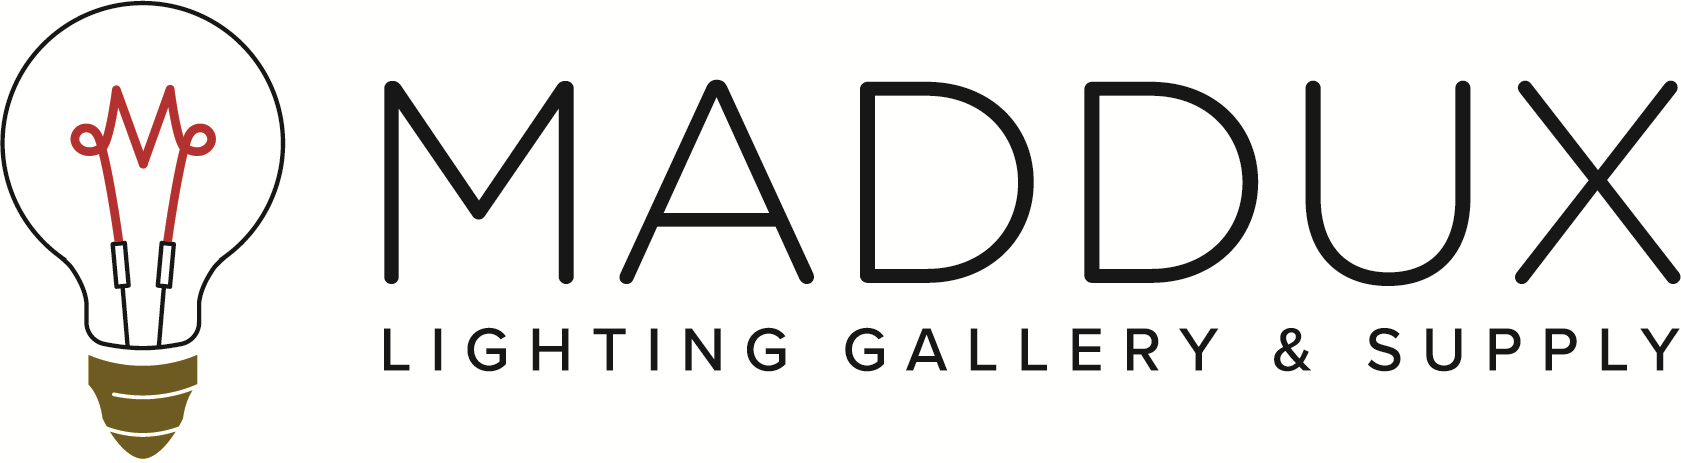 MADDUX LIGHTING AND DESIGN